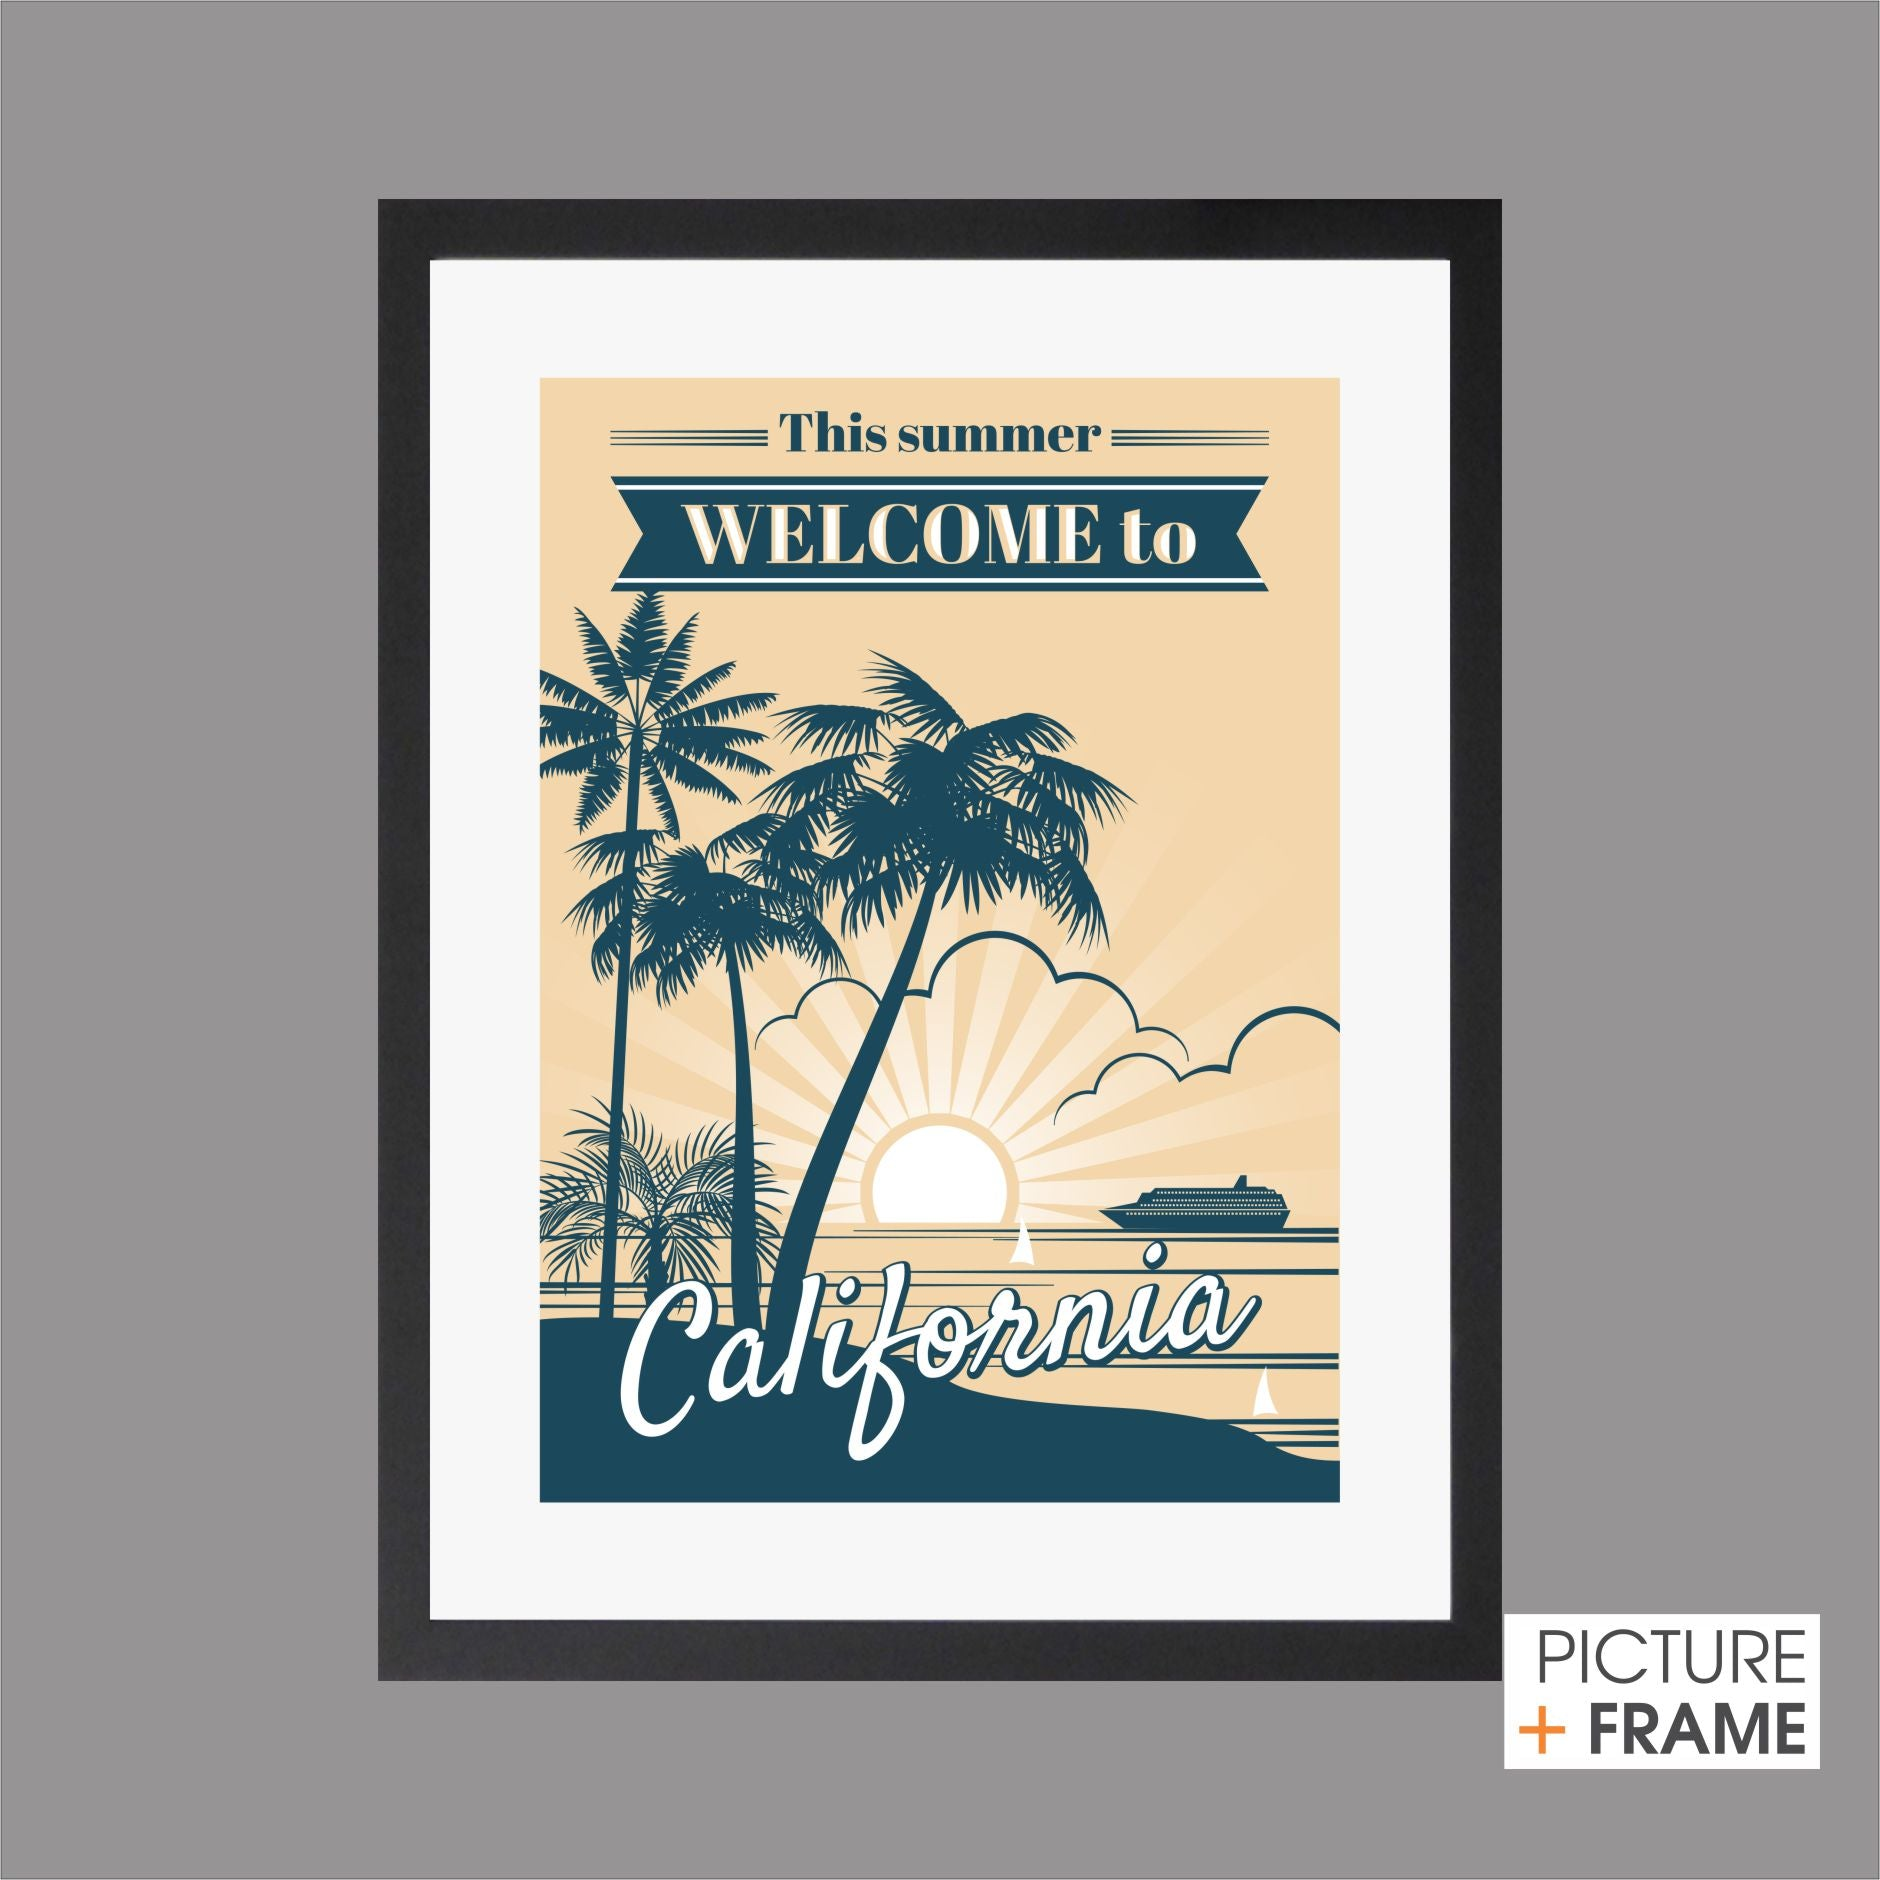 California Vintage - Picture Framer Perth